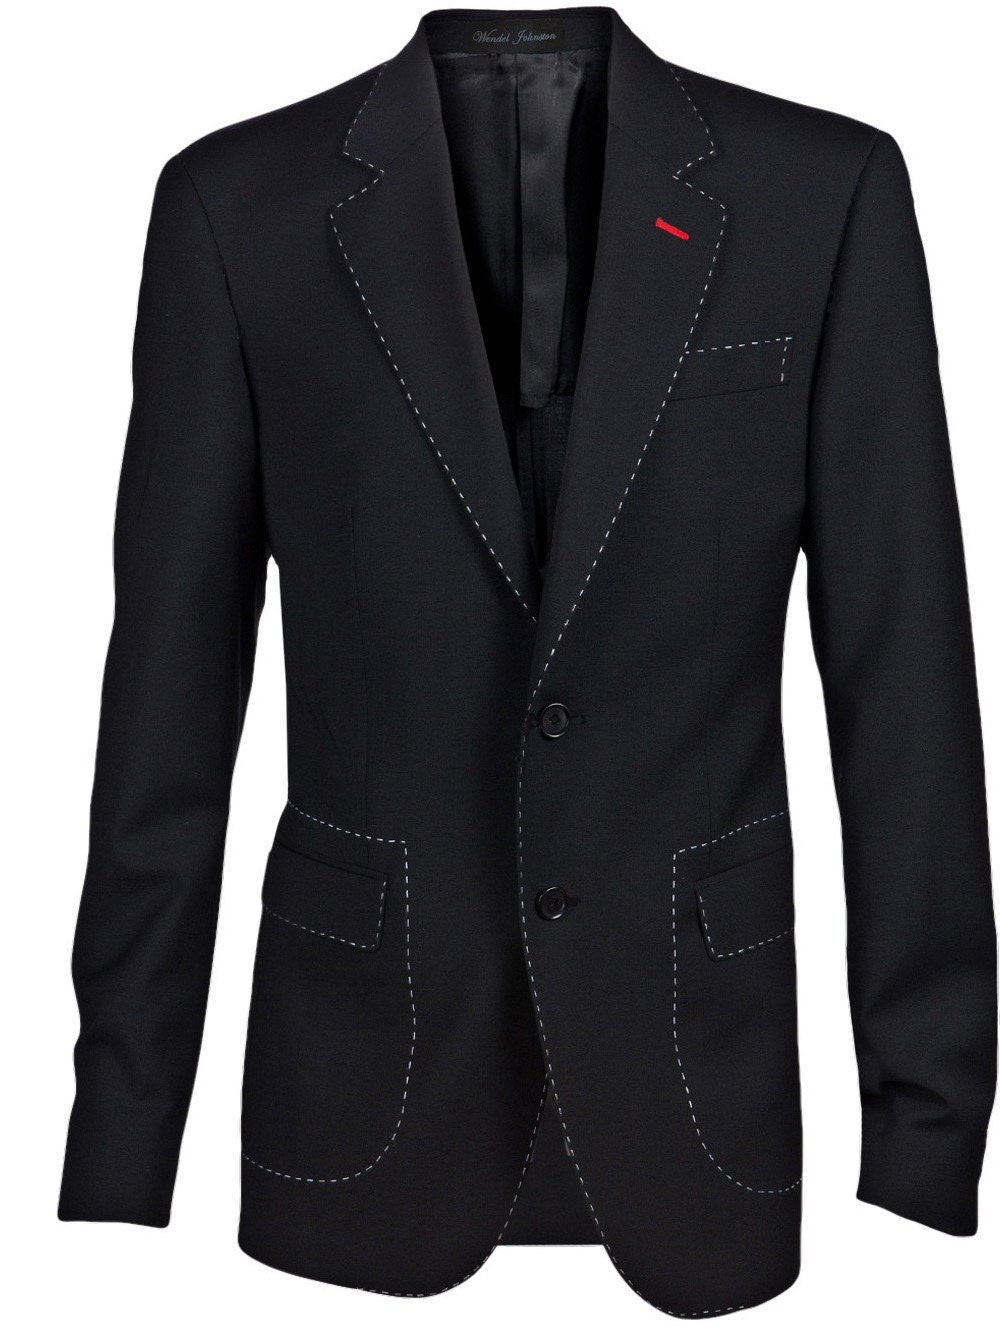 Men's Black Blazer with white and red highlight by Wendelart